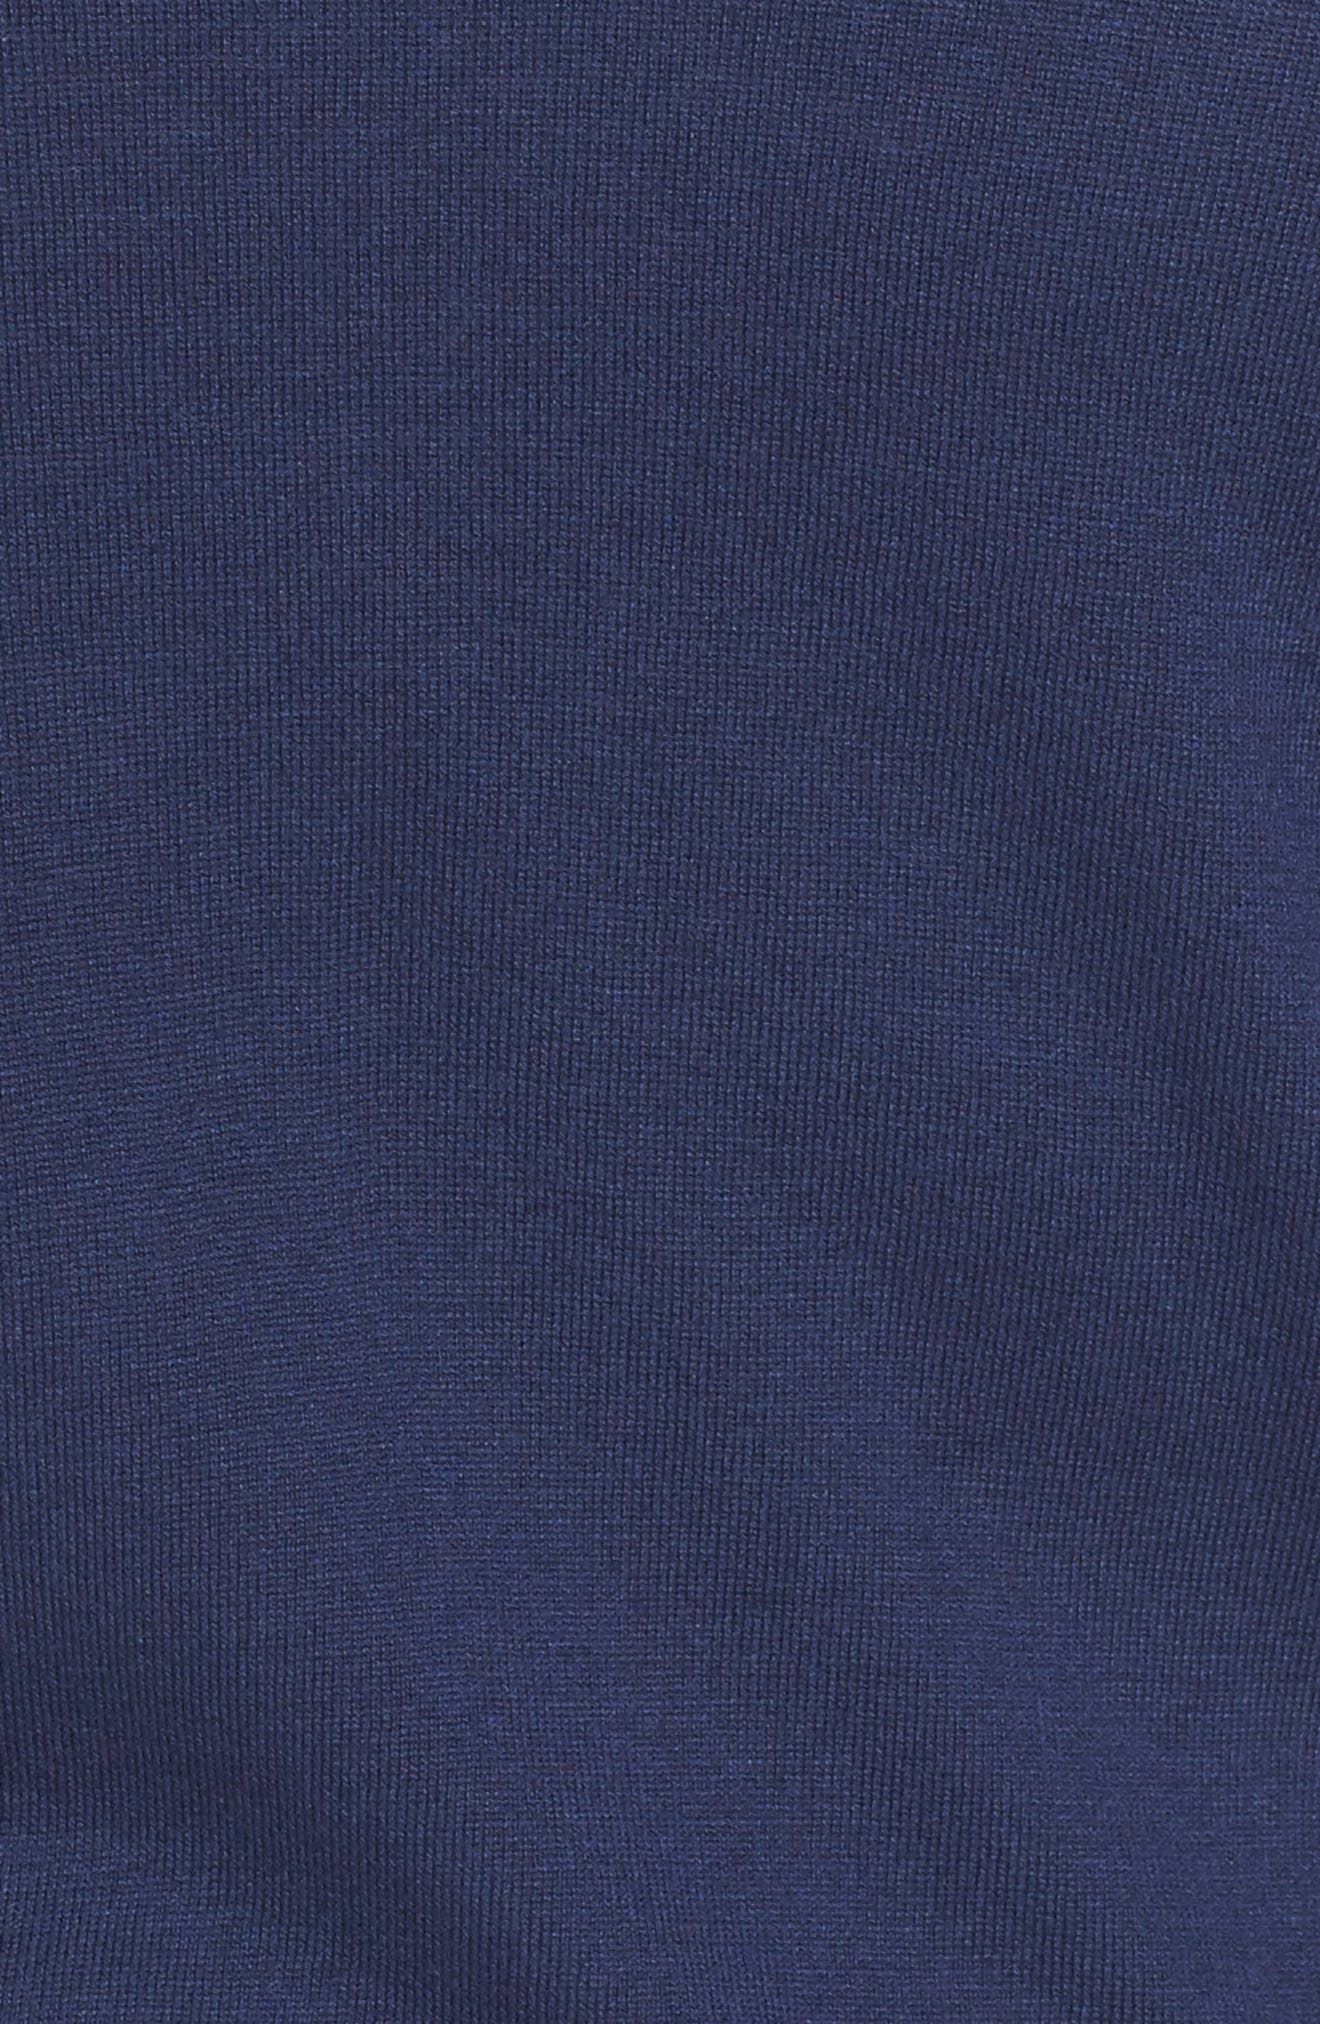 Crop Open Front Cardigan,                             Alternate thumbnail 5, color,                             Navy Medieval